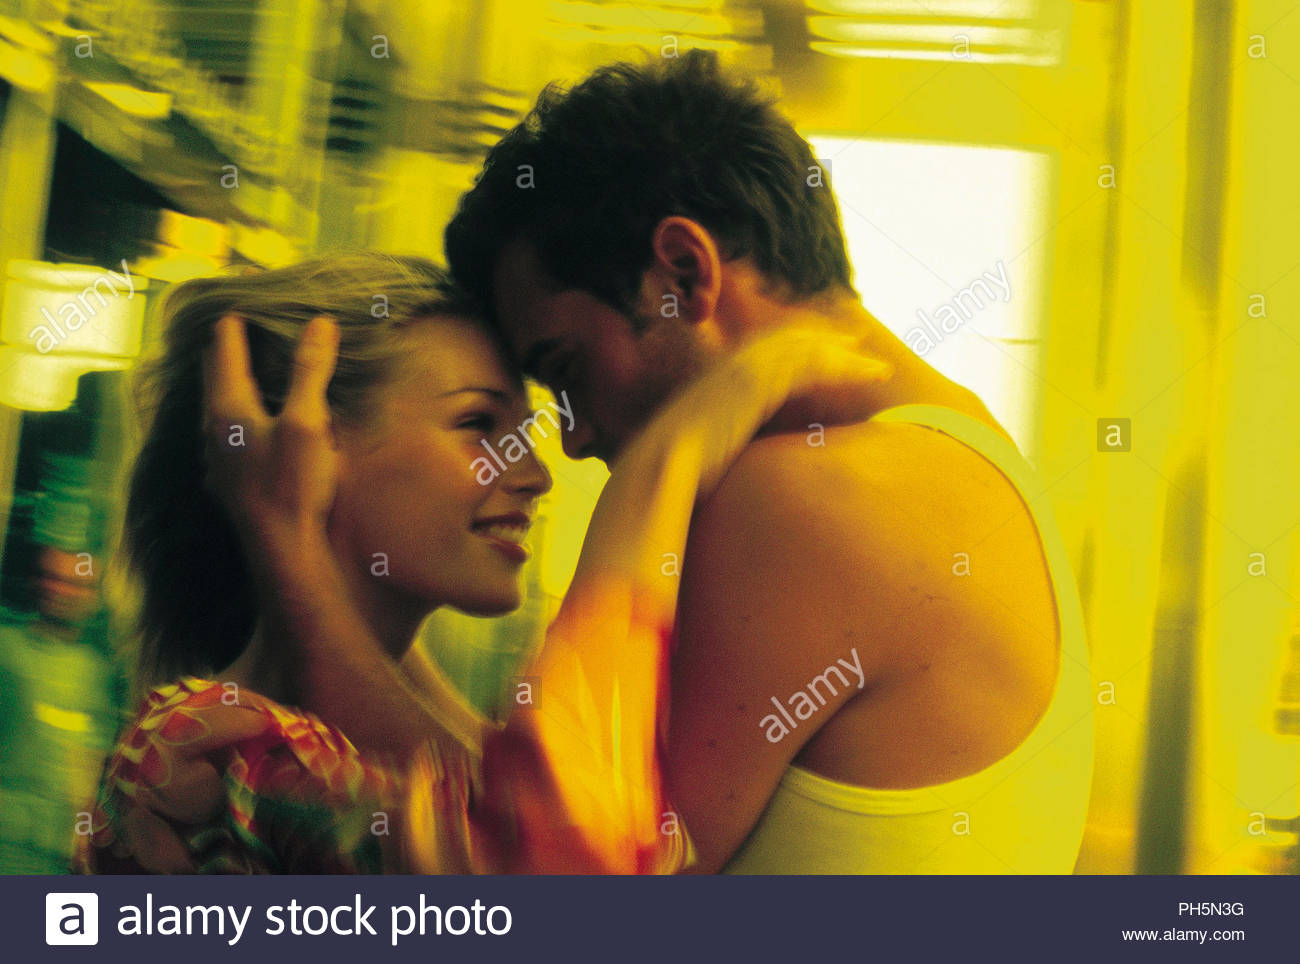 Affectionate young couple - Stock Image